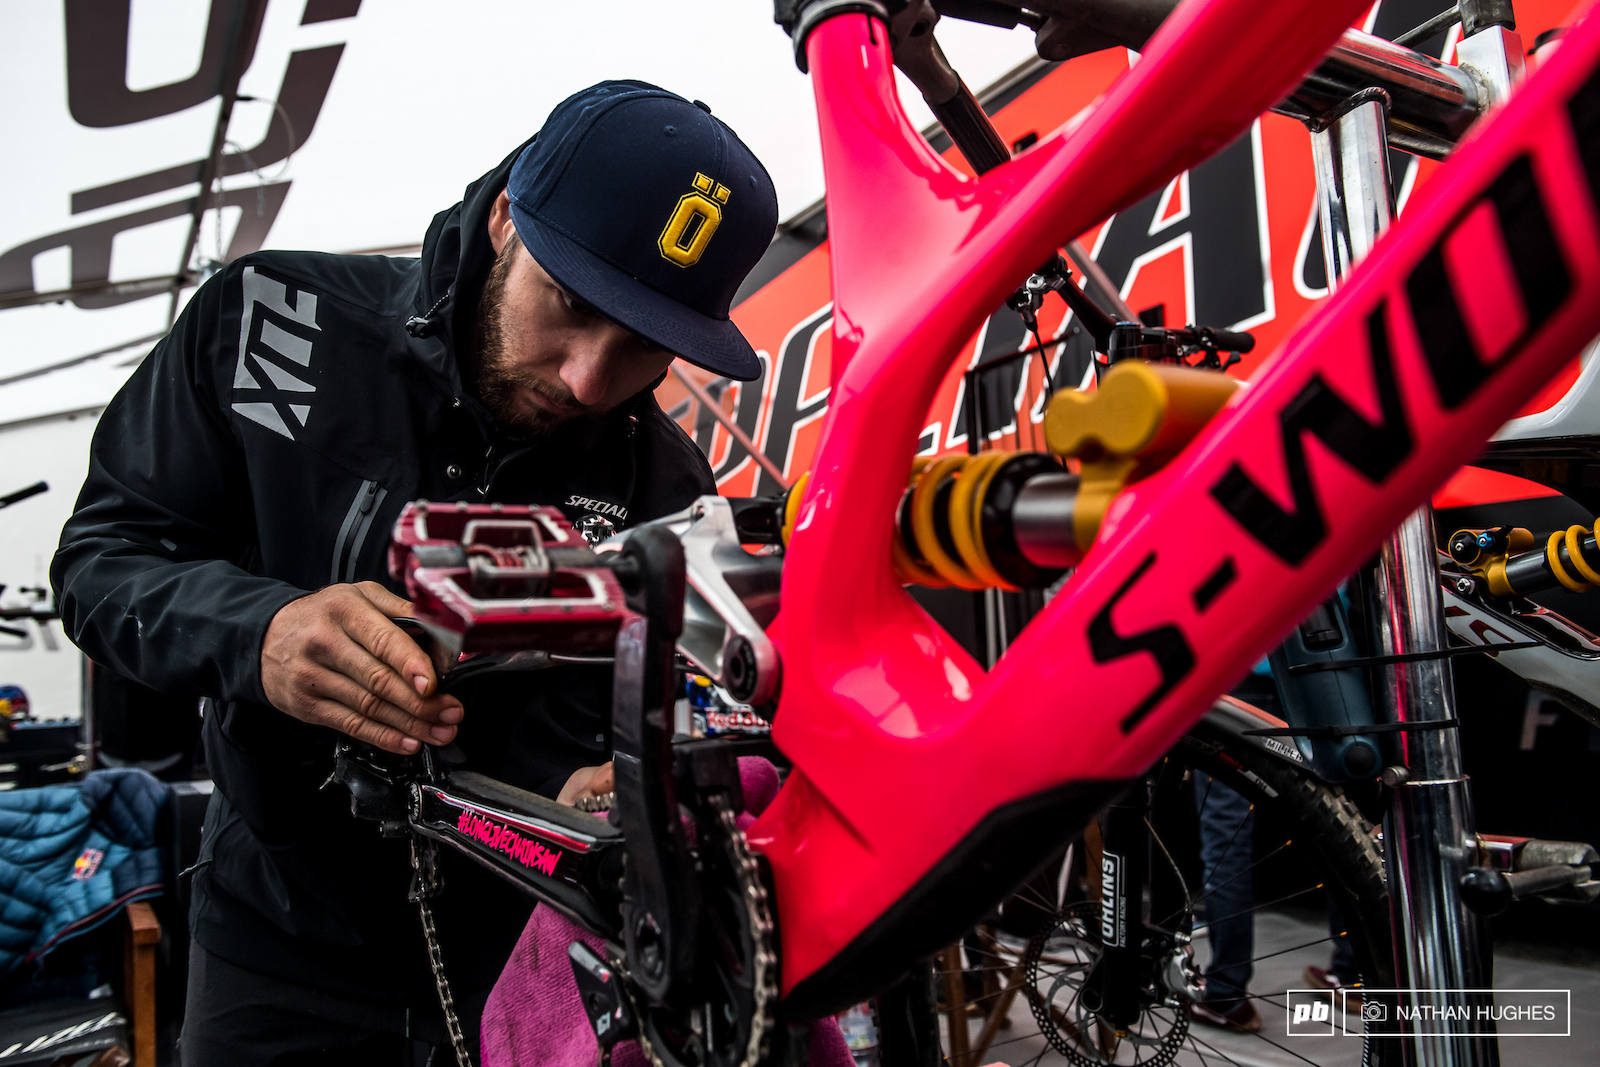 Kevin Joly working on Pinkbike.